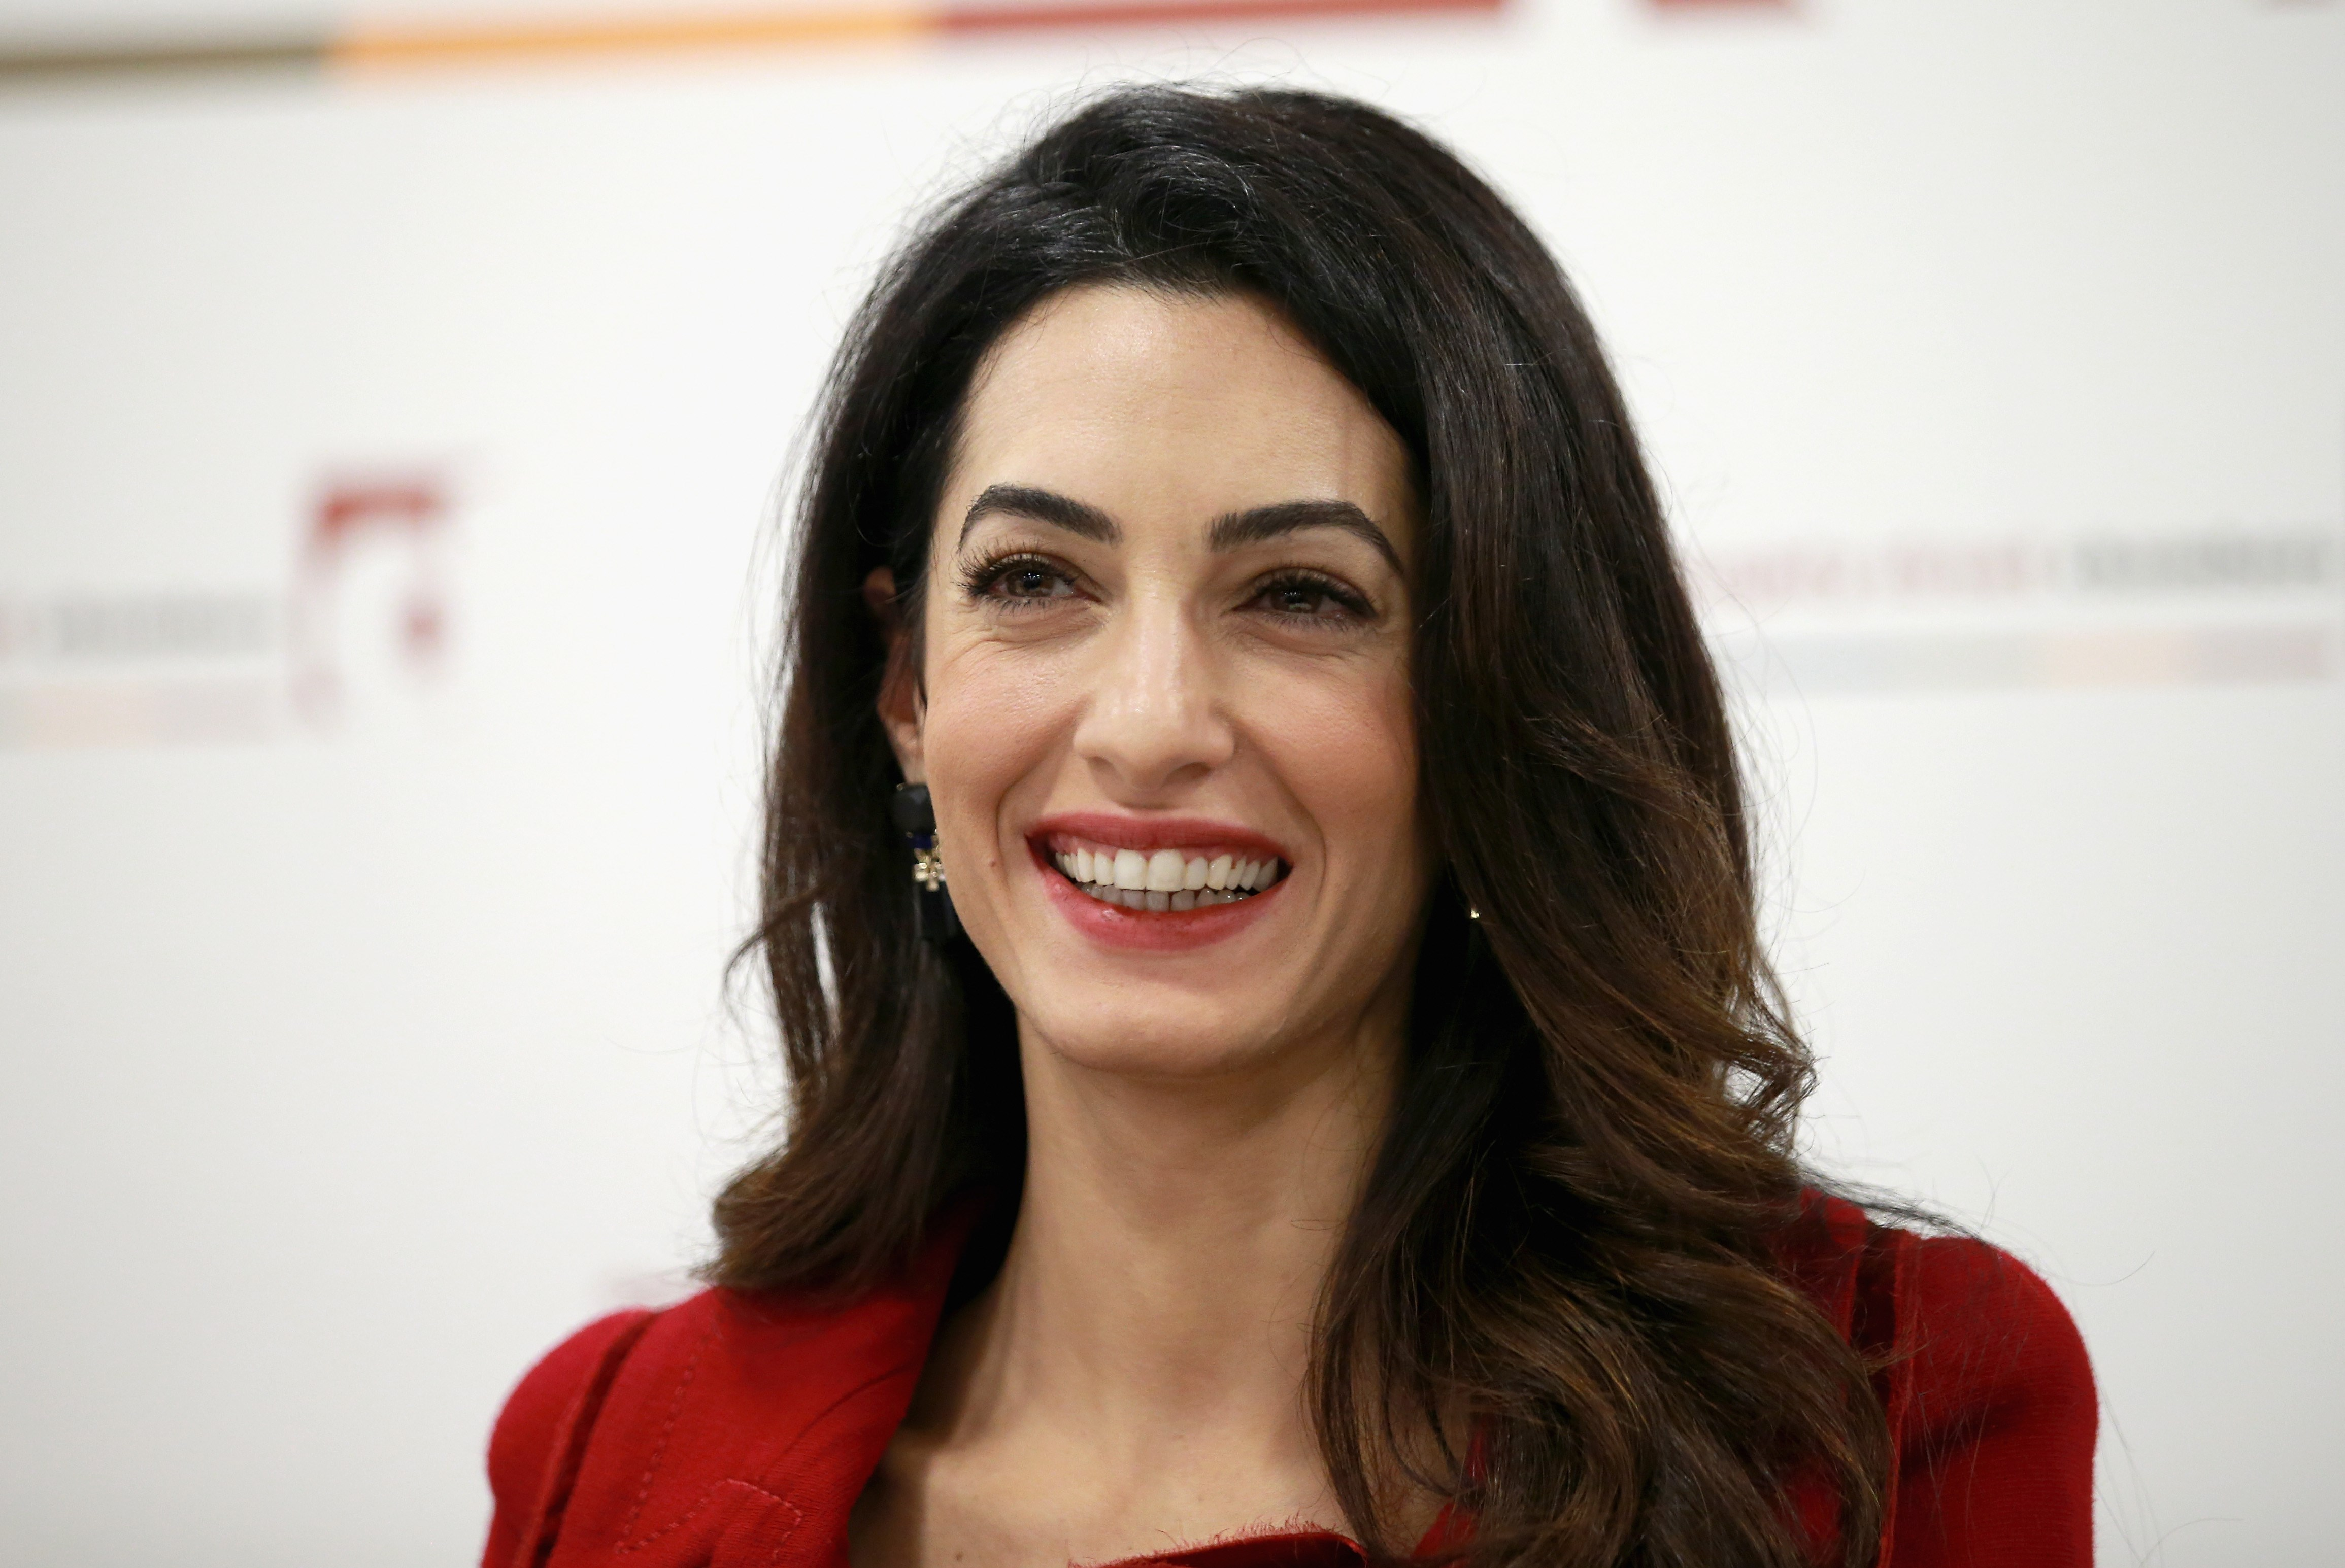 4620x3090 - Amal Clooney Wallpapers 3